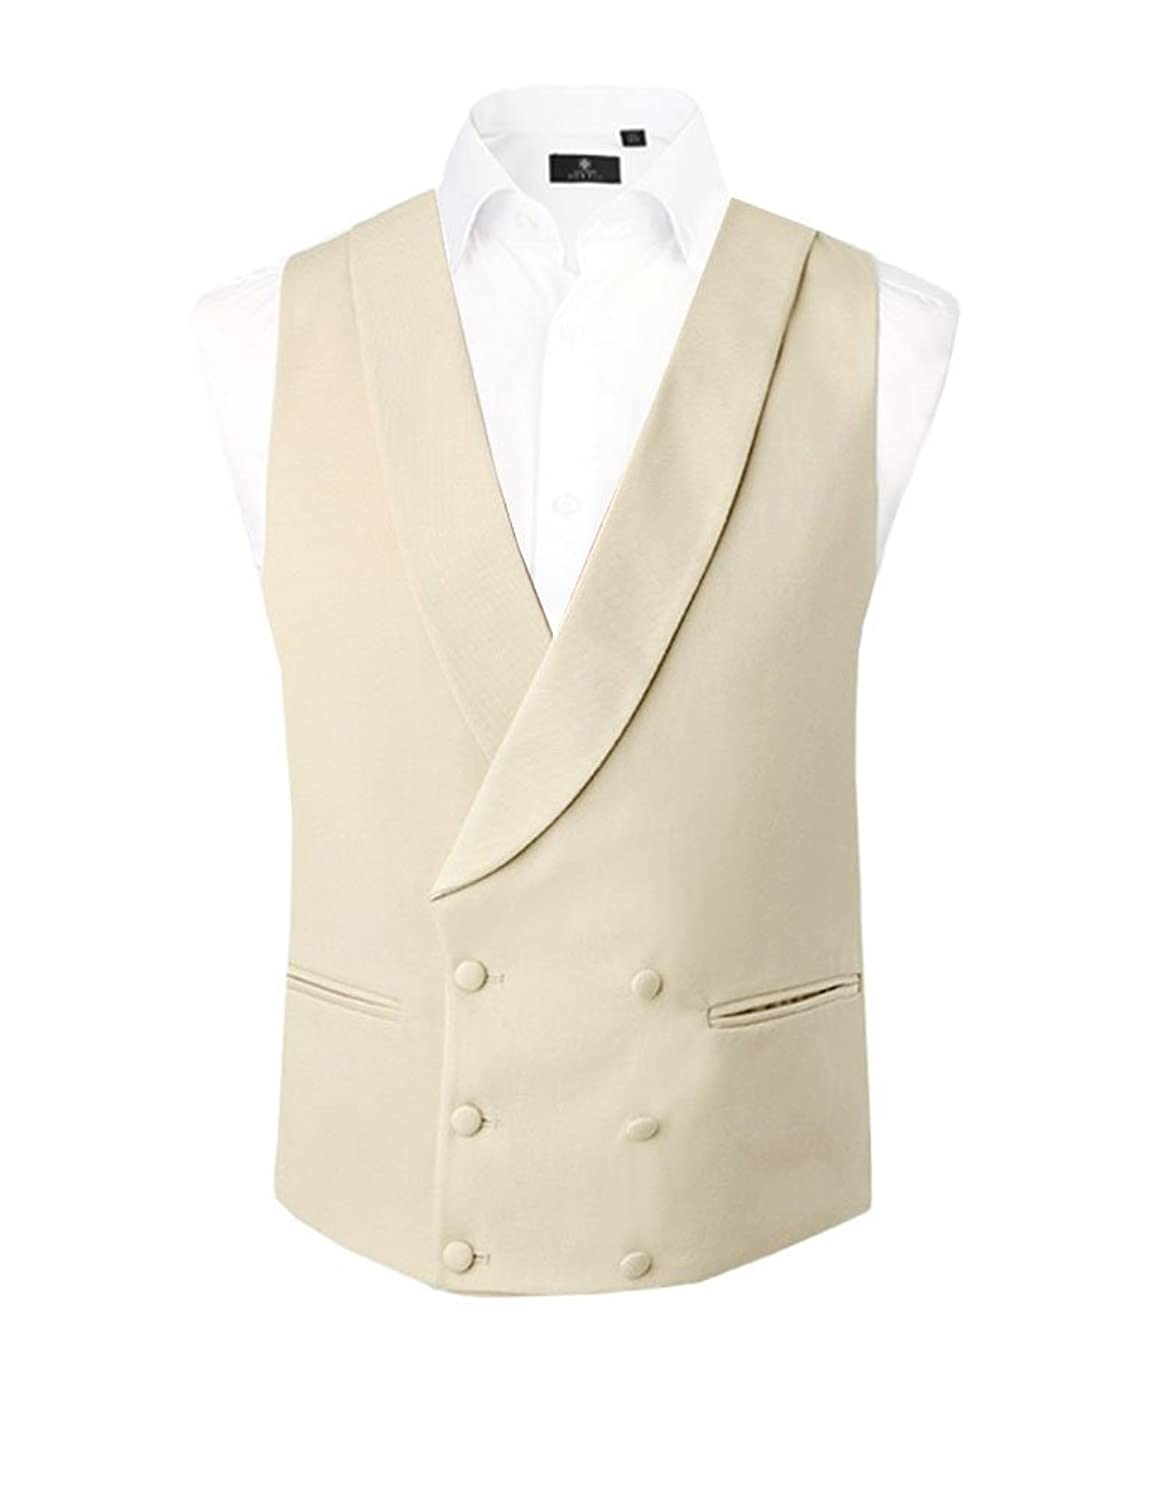 Edwardian Style Clothing Mens Gold/Buff Double Breasted Shawl Lapel Morning Suit Waistcoat £39.99 AT vintagedancer.com